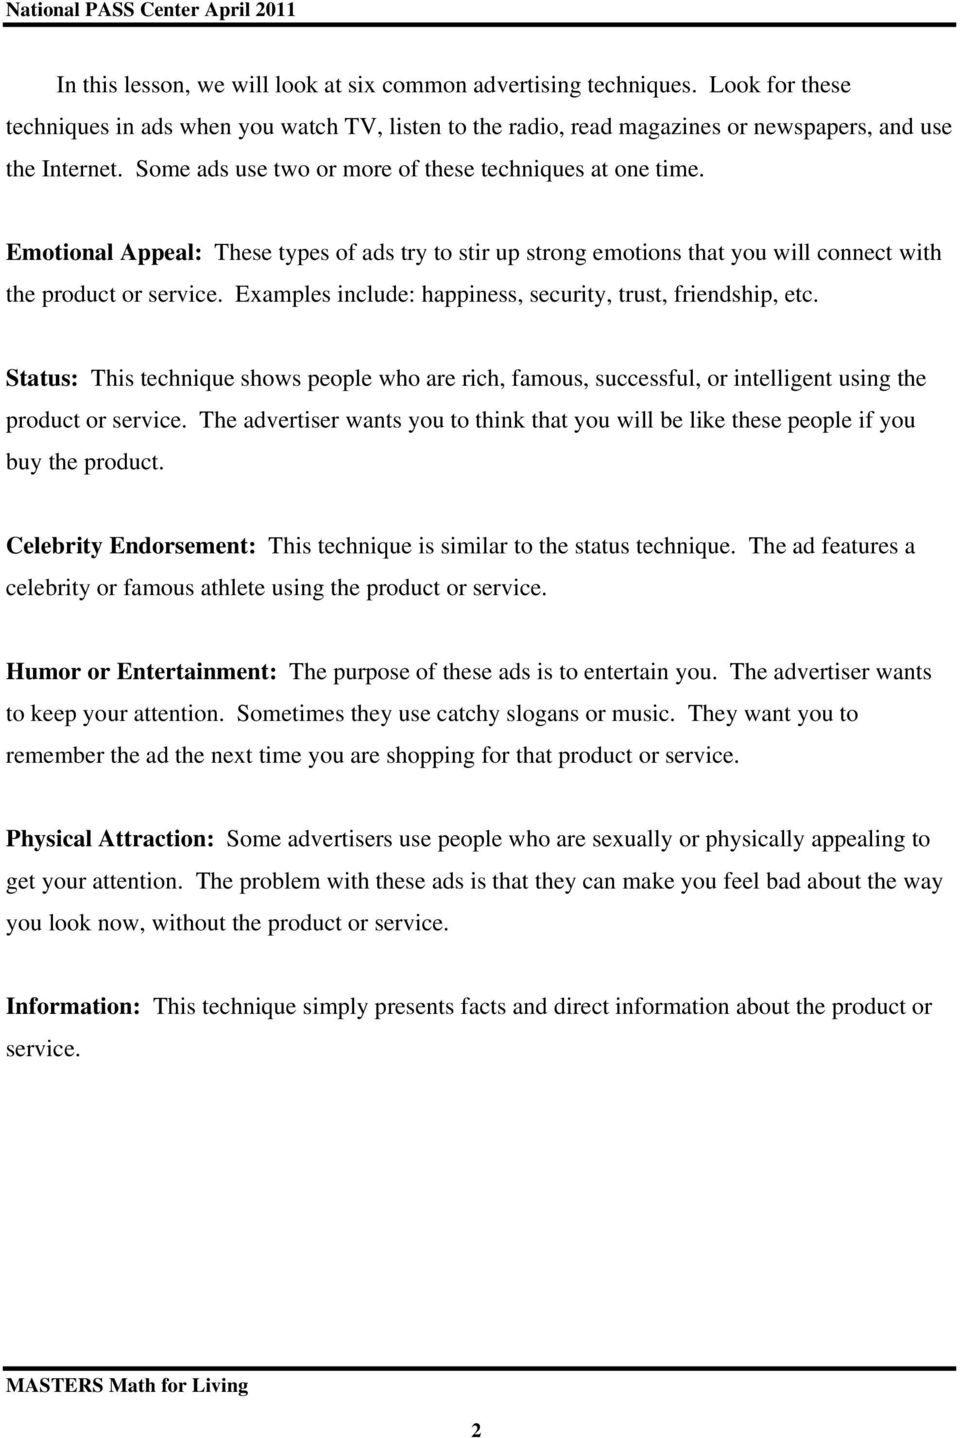 Examples include: happiness, security, trust, friendship, etc. Status: This technique shows people who are rich, famous, successful, or intelligent using the product or service.